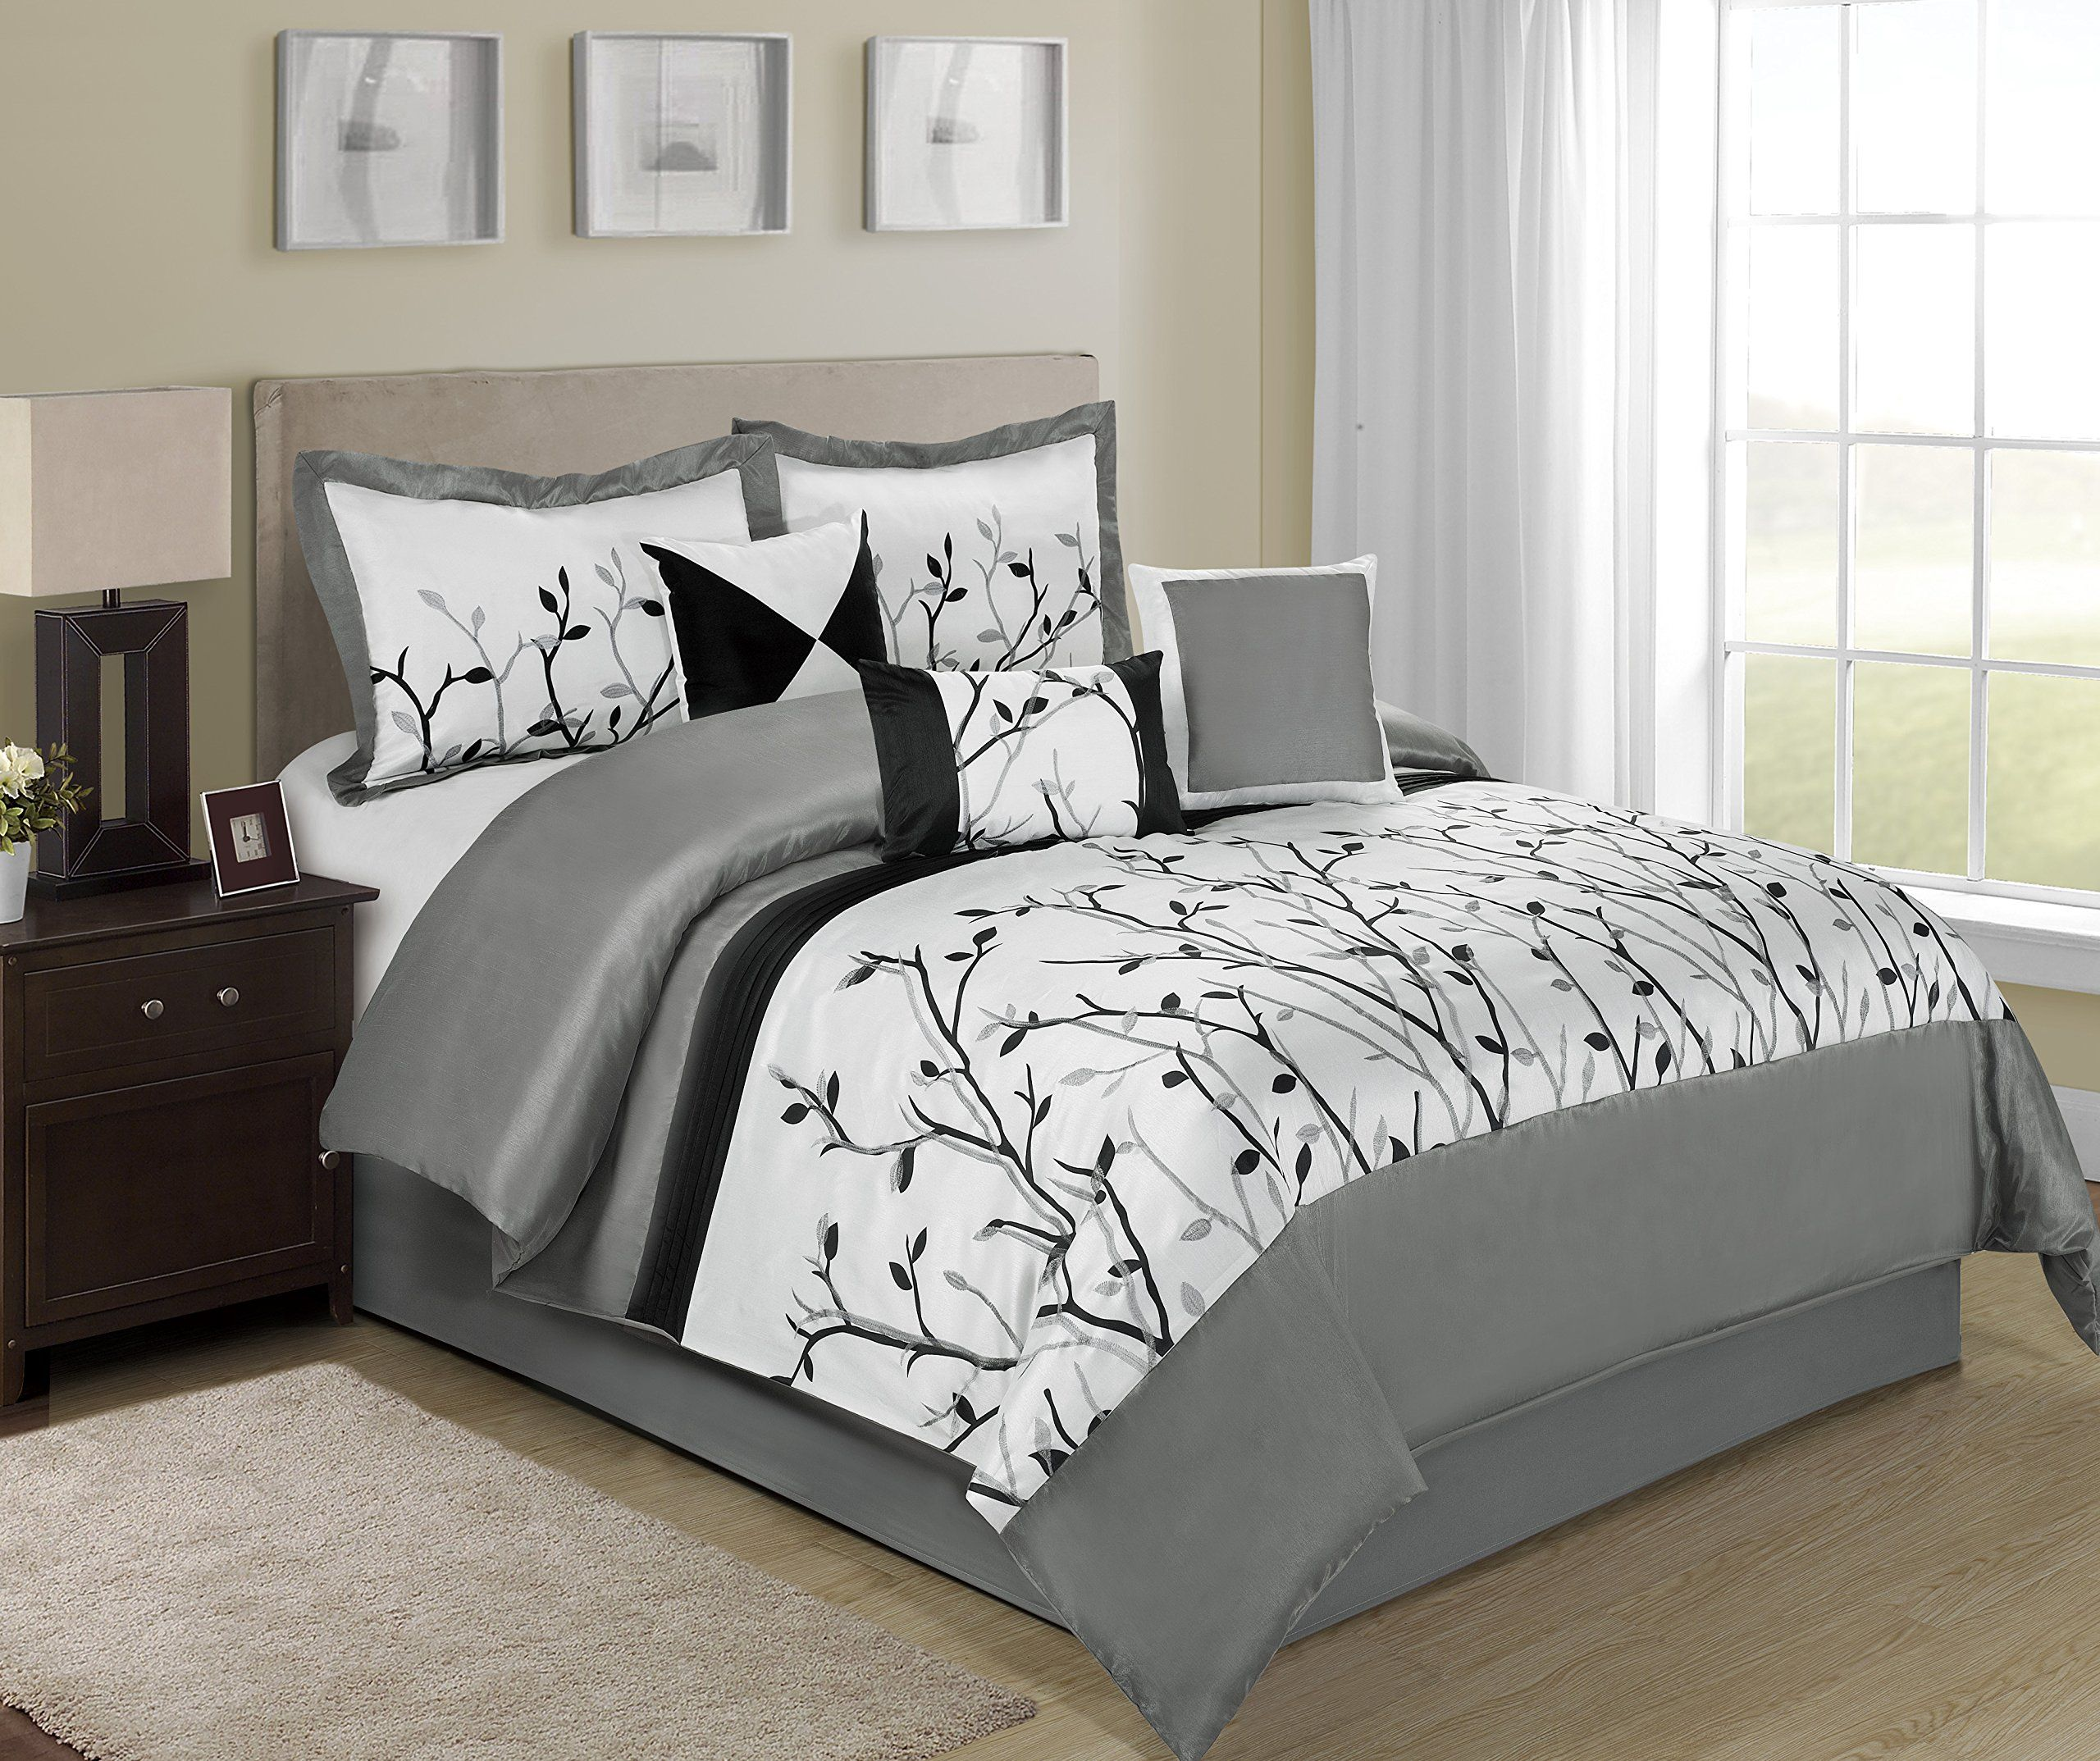 7 Piece Willow Tree Branches Black White Design Bed In A